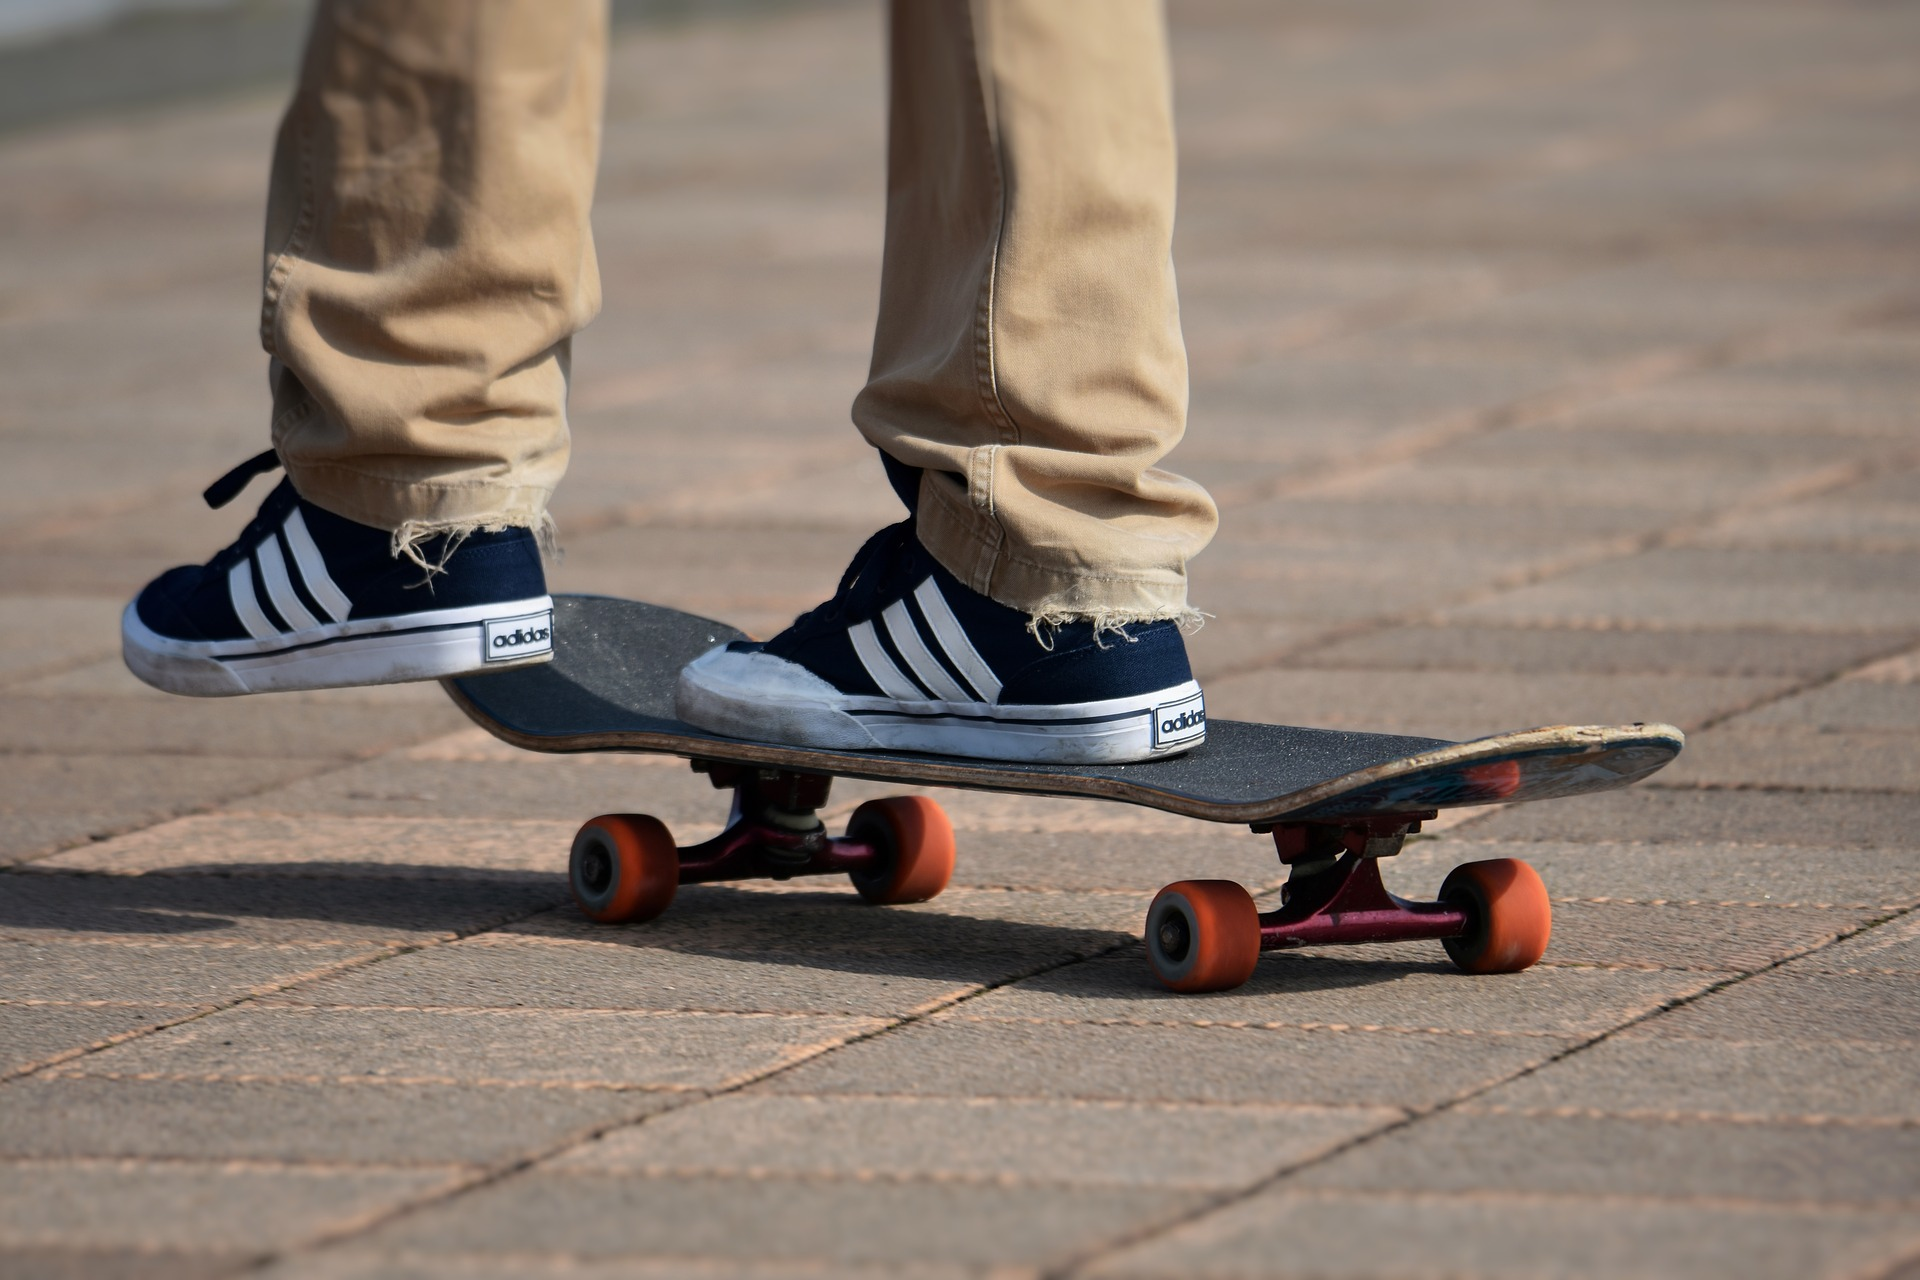 Skateboard for Boys And Girls: How to Choose and Learn to Ride?